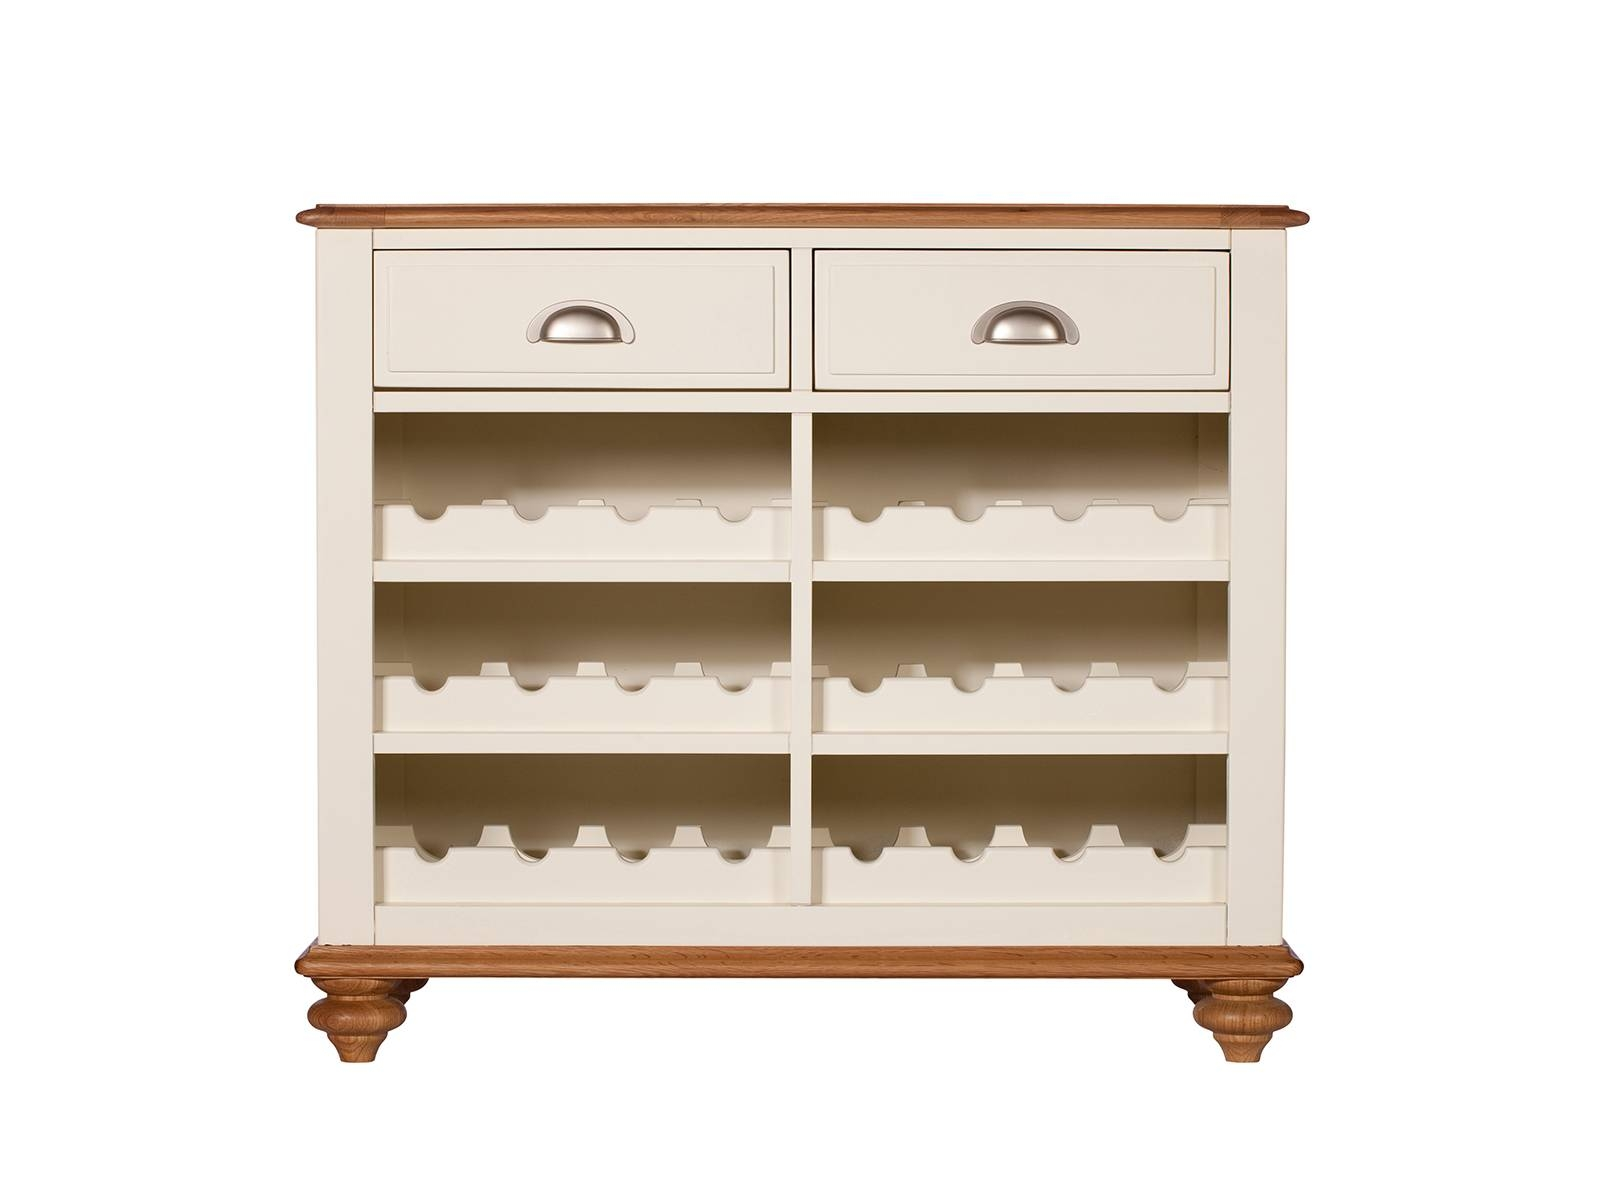 Shropshire Dining Narrow Sideboard With Wine Rack | Sideboards Intended For Sideboards With Wine Racks (#11 of 20)